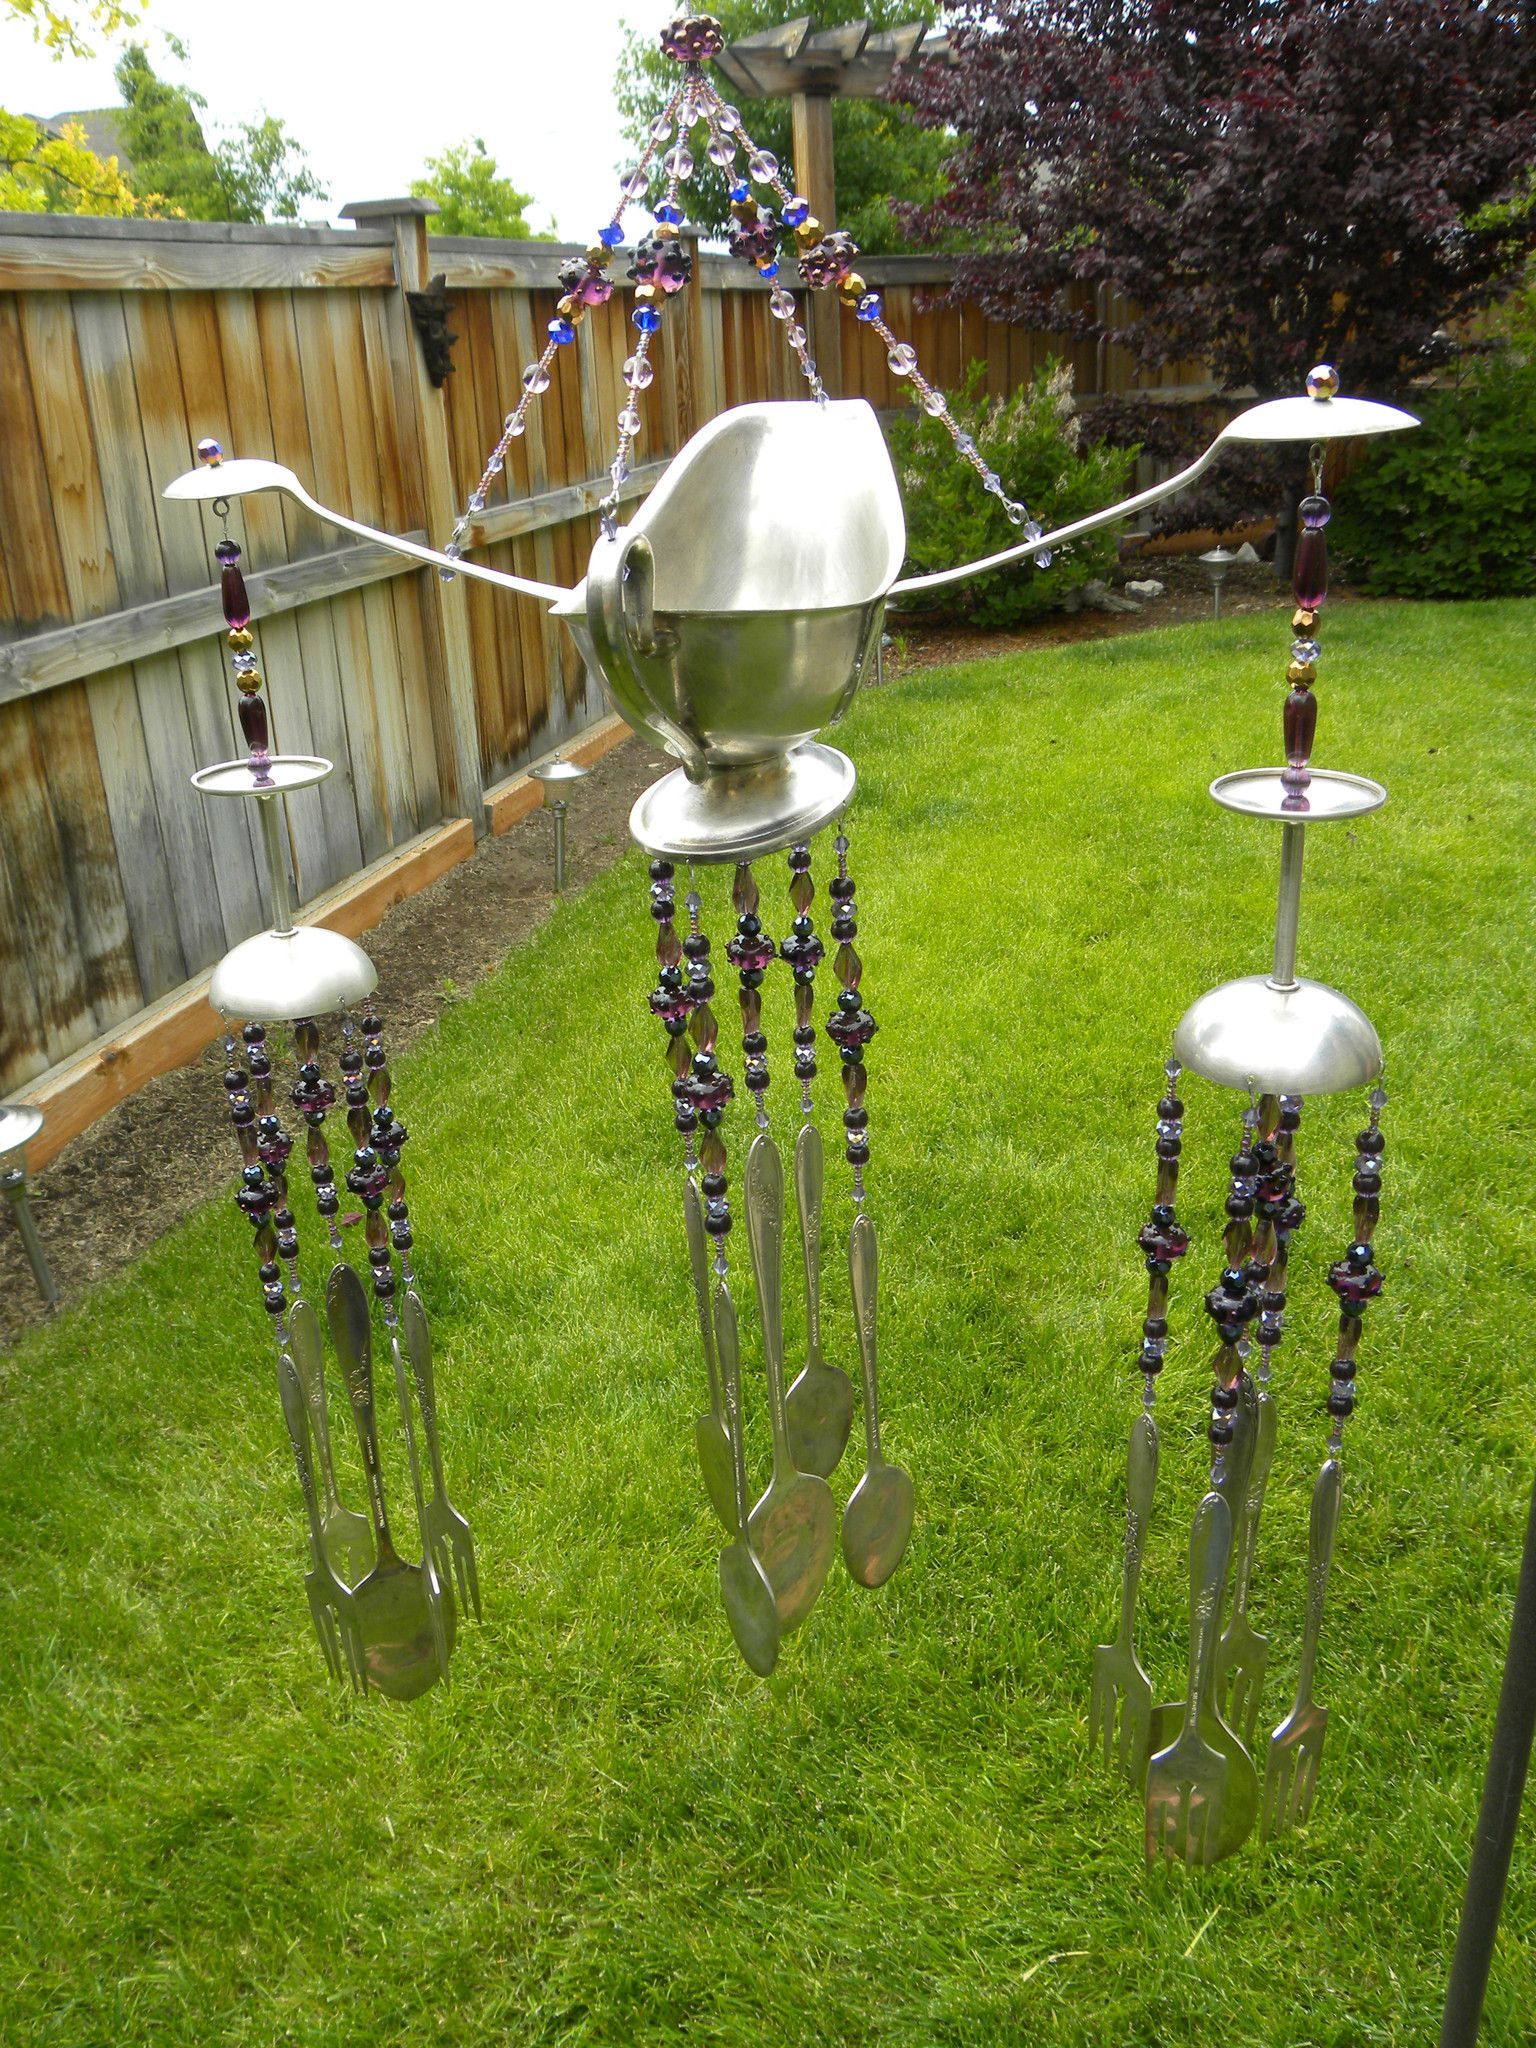 Wind chime art with assorted whimsical silver